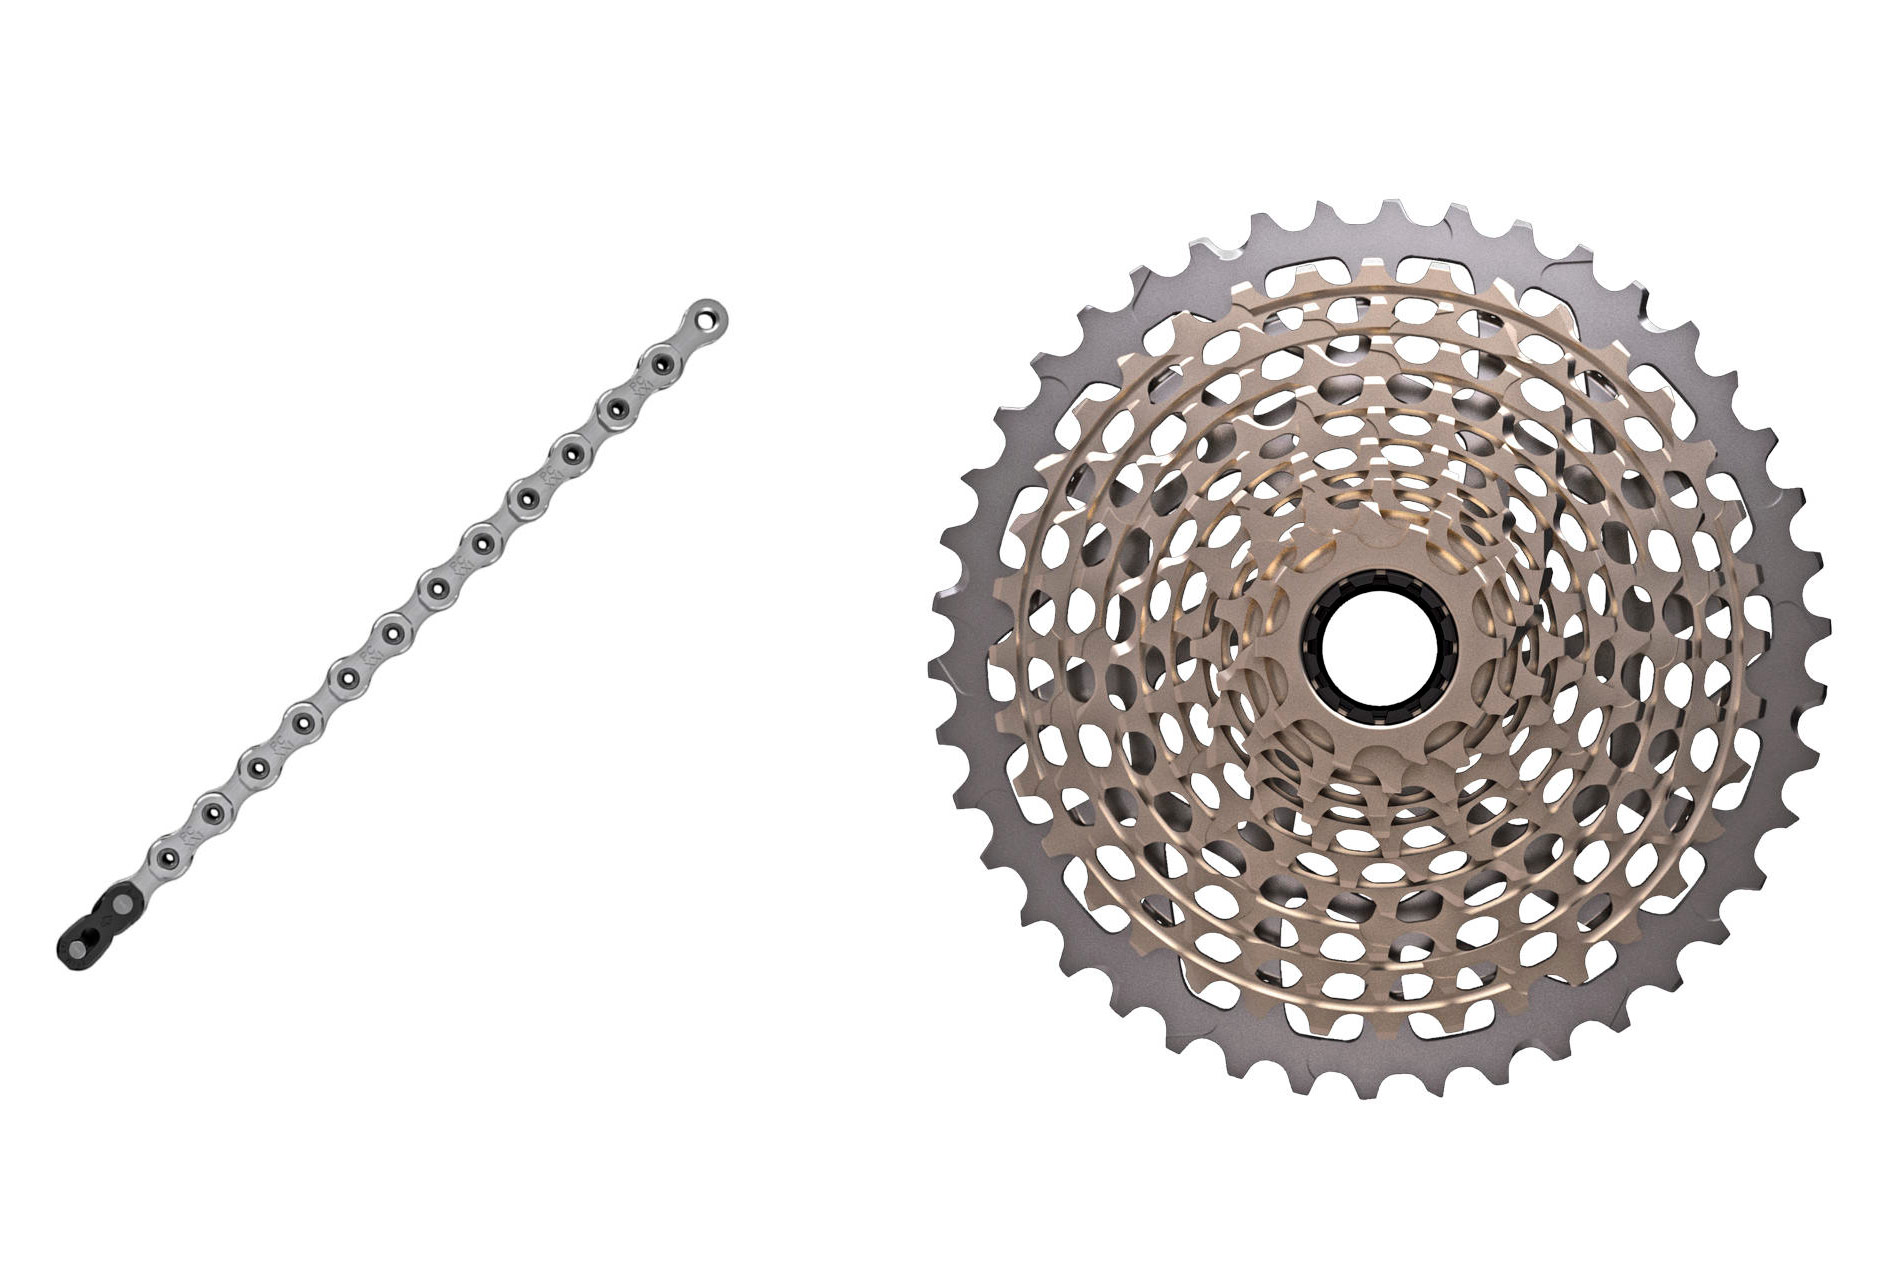 664b29262b4 Sram XX1 XG-1199 11 Speed Cassette + Sram XX1 Chain Bundle | Alltricks.fr